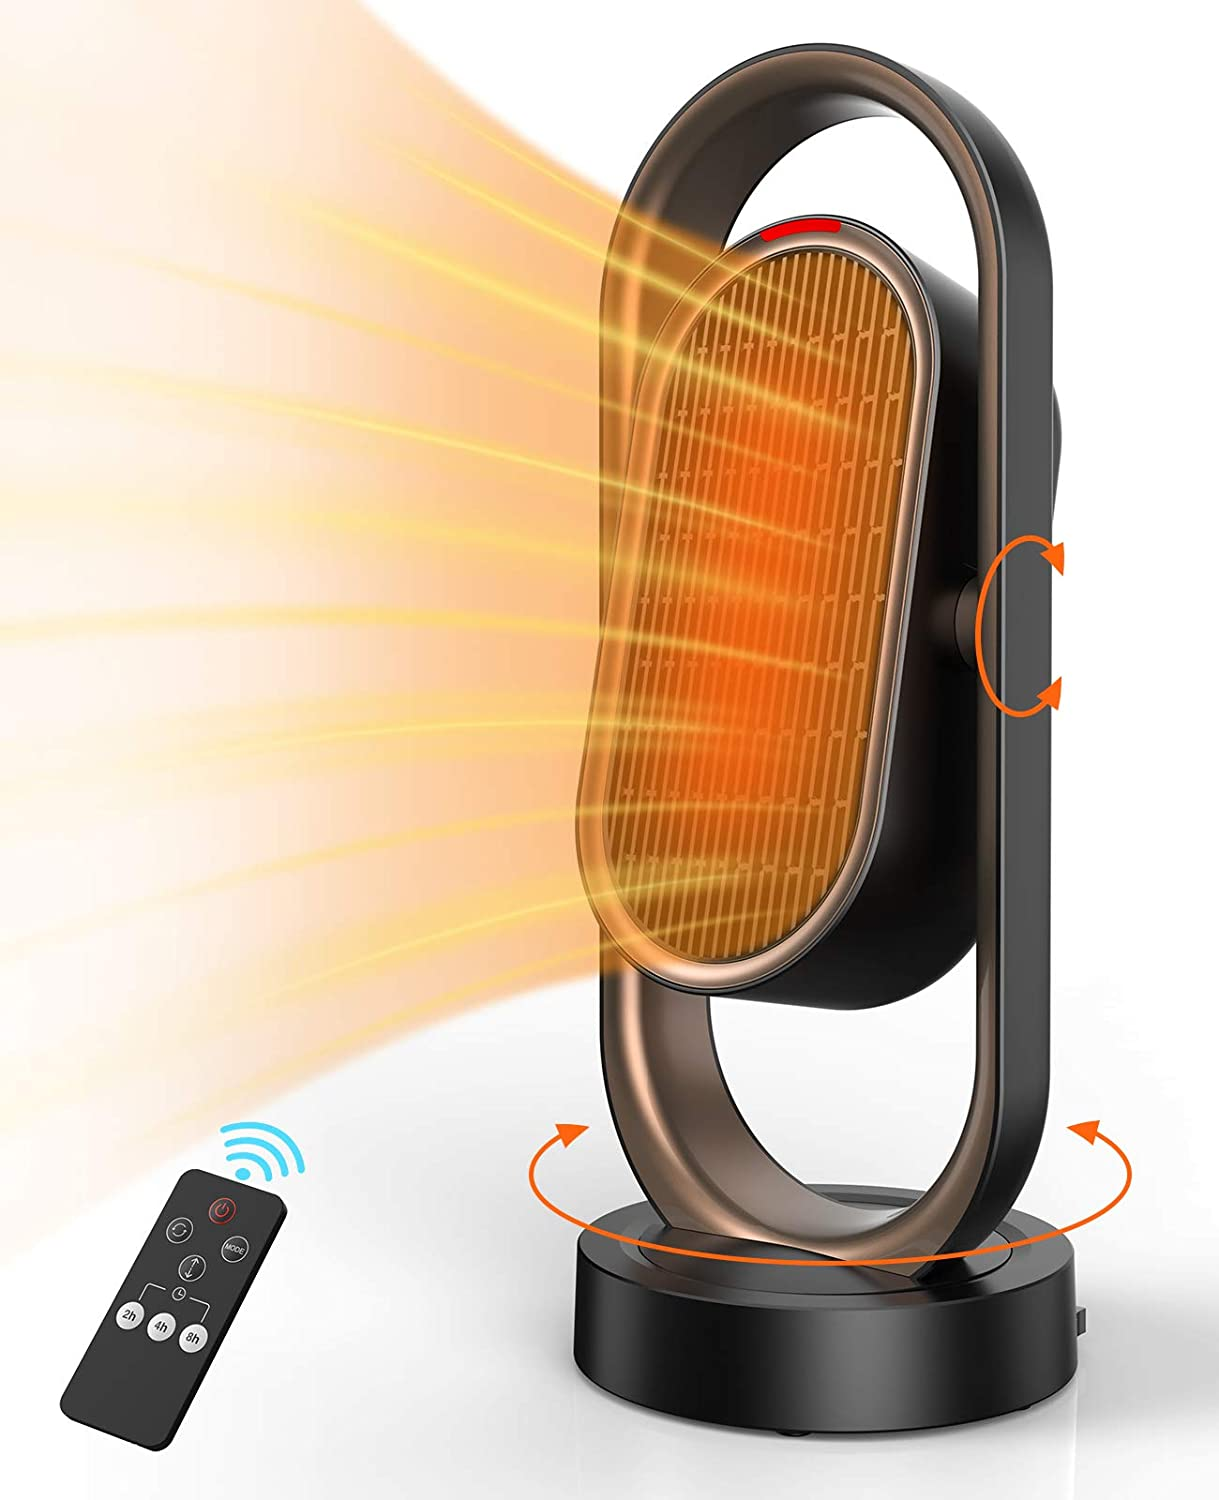 Oscillating Space Heater, Infray 1500W Portable Tower Heater, Fast Heating Ceramic Heater, PTC Electric Heater with Remote Control, 8H Timer, Up and Down Auto Swing for Home Office Indoor Use